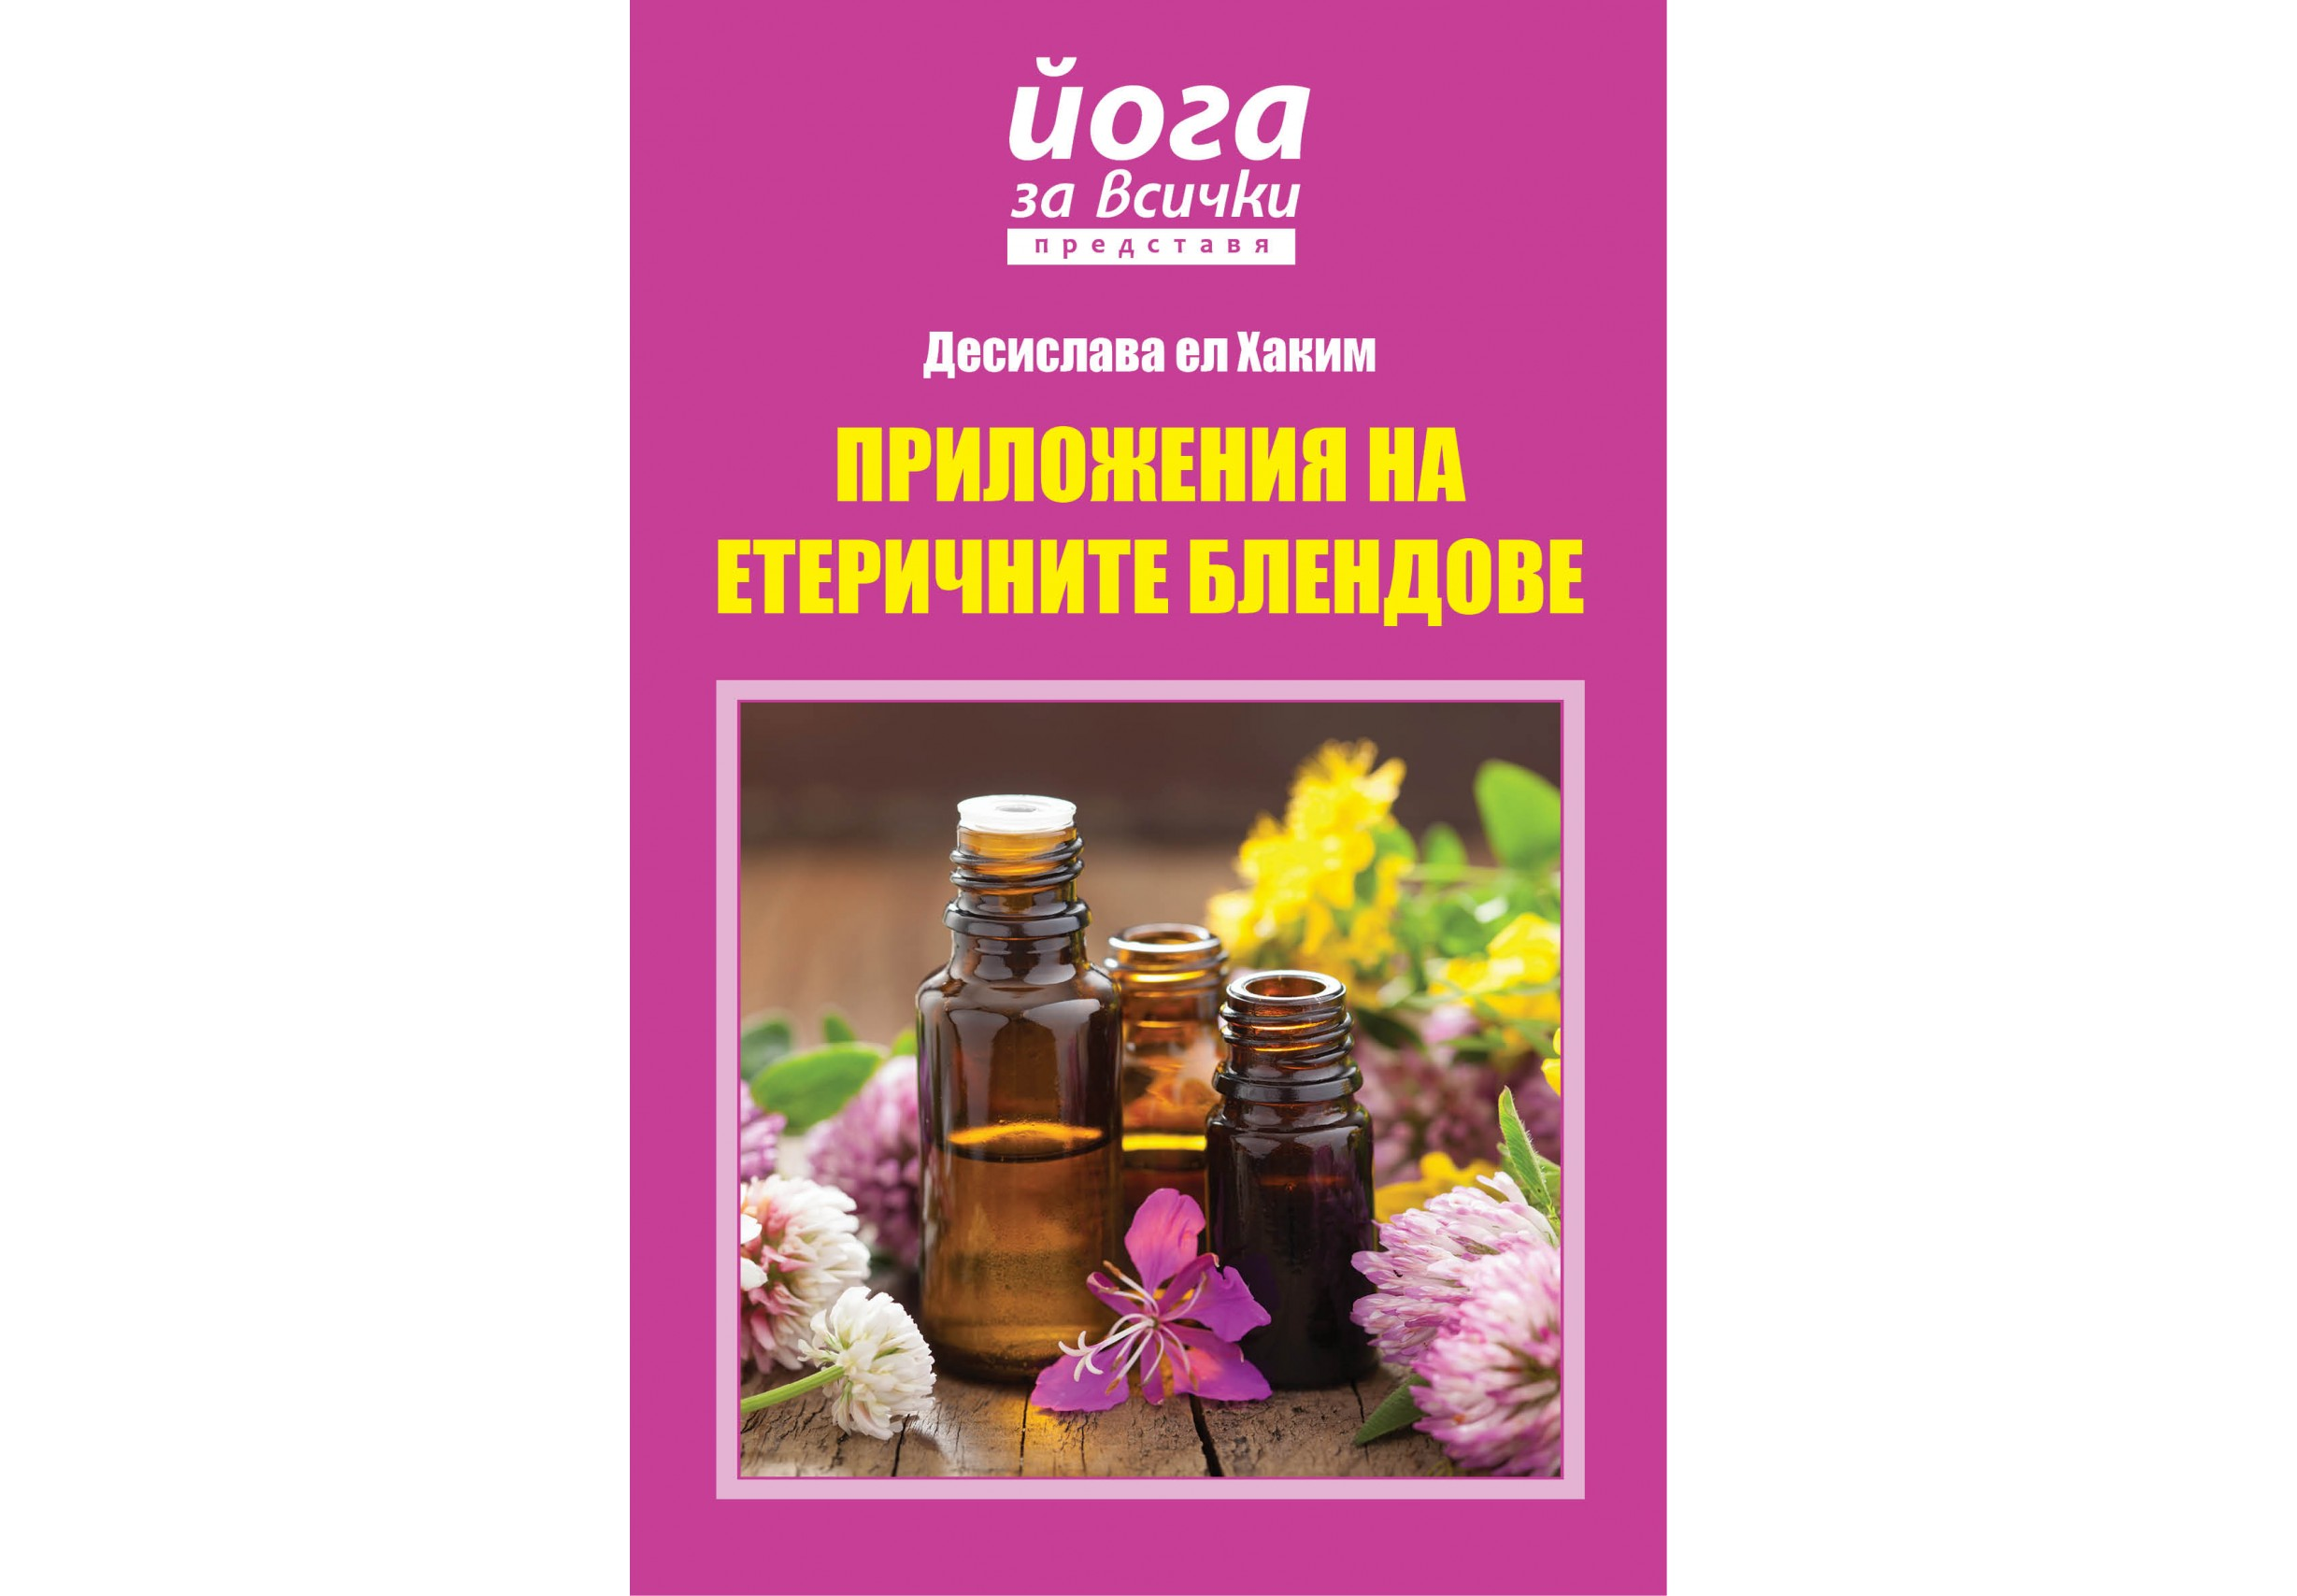 APPLICATION OF ESSENTIAL OIL BLENDS